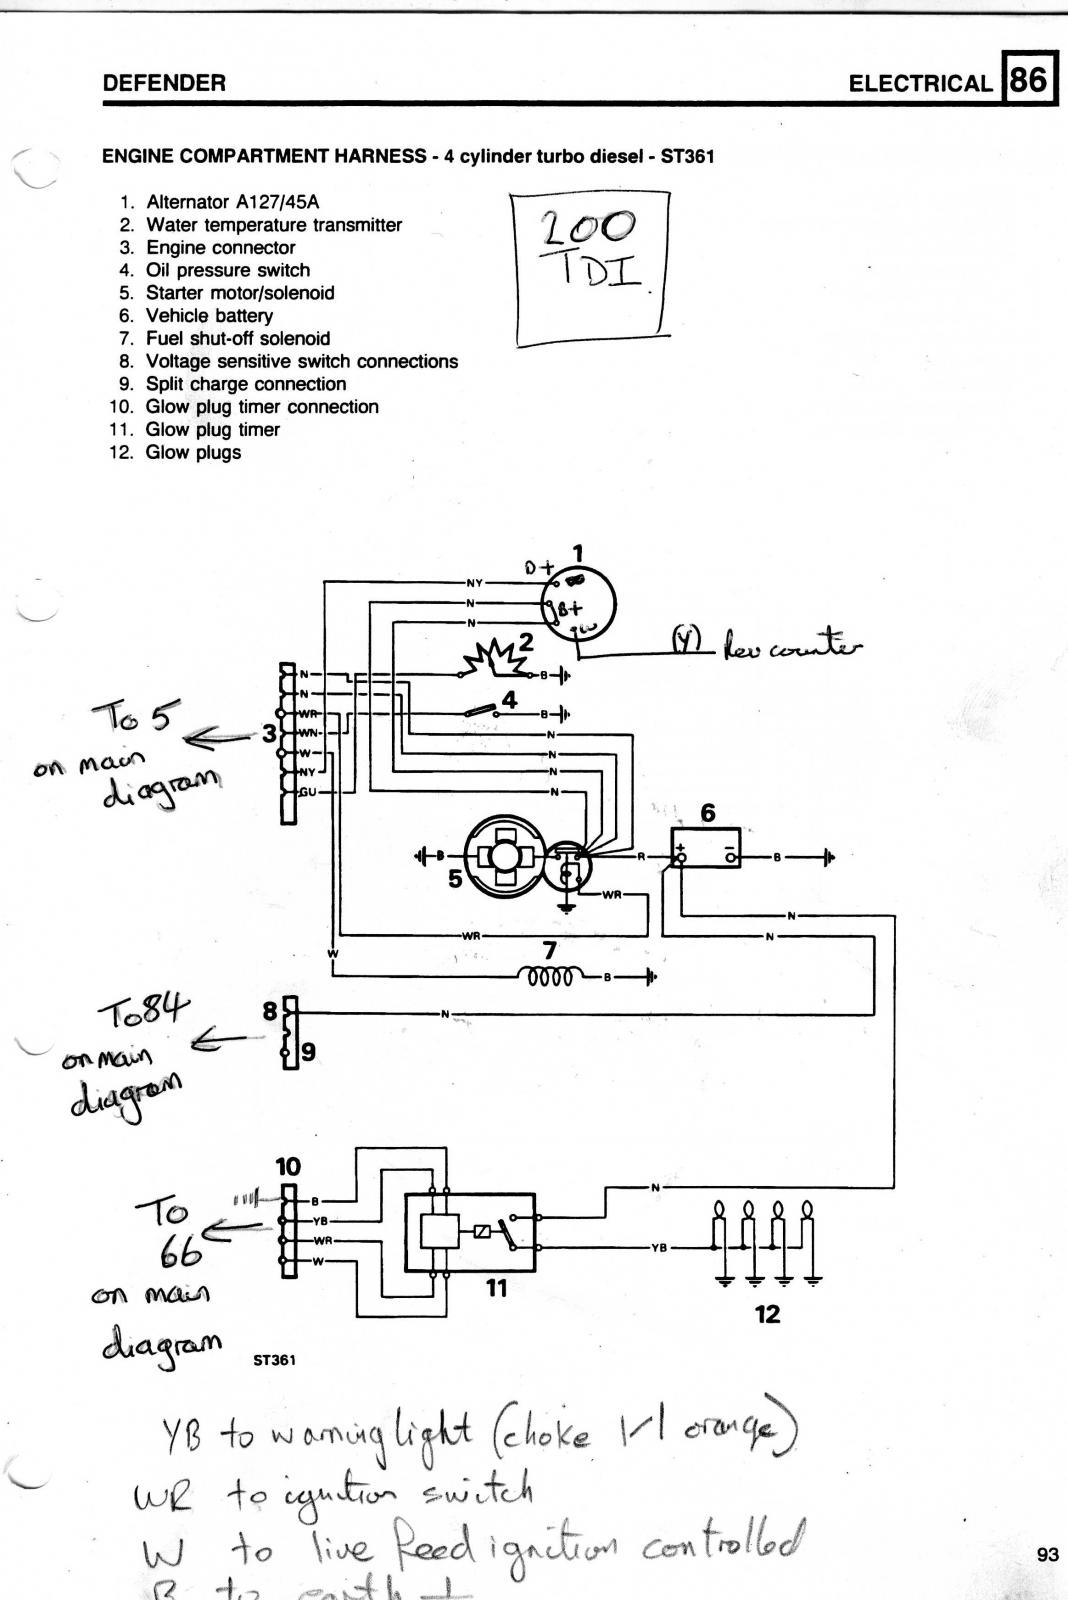 Lovely 3 Post Solenoid Wiring Diagram Ideas - Electrical and ...